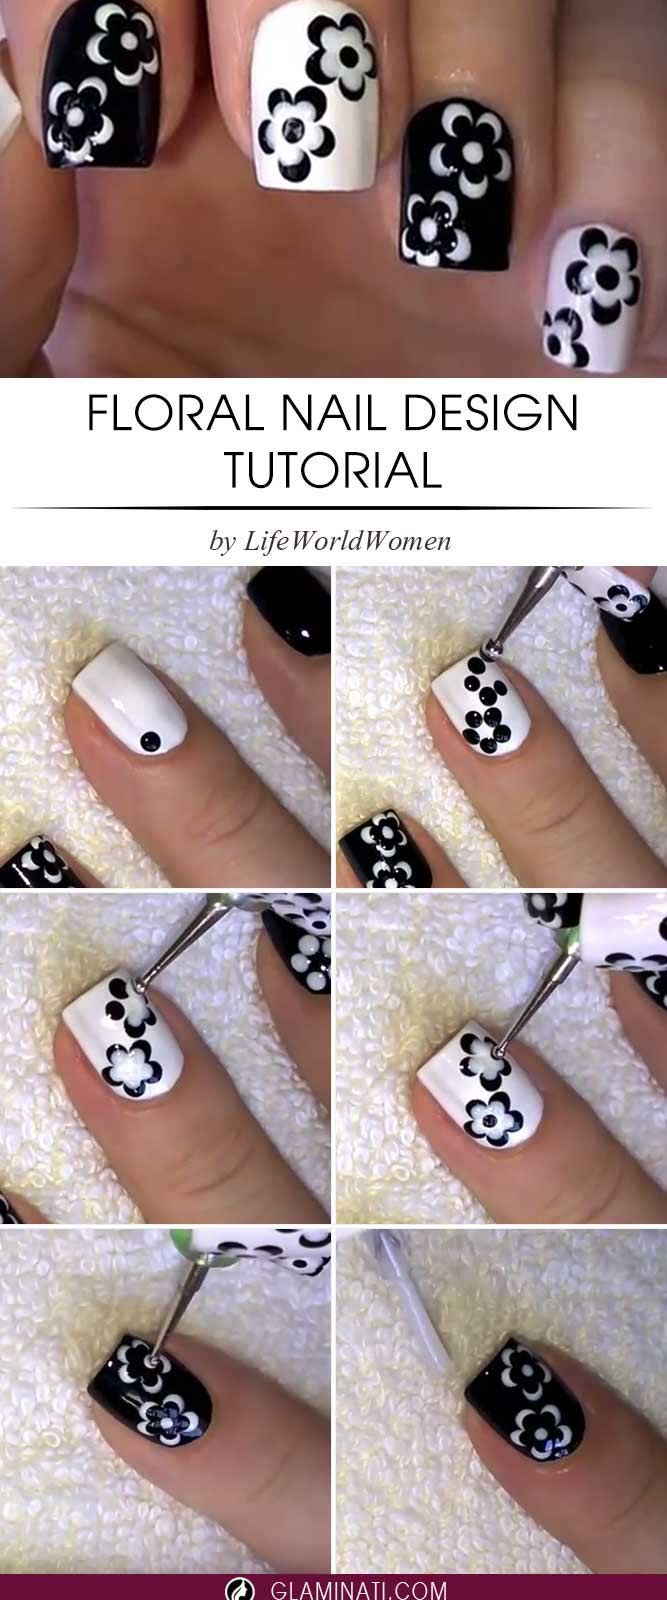 Pattern nail art designs fancy nail art for prom simple nail art lines - Best 10 Easy Nail Designs Ideas On Pinterest Easy Nail Art Diy Nails And Diy Nail Designs